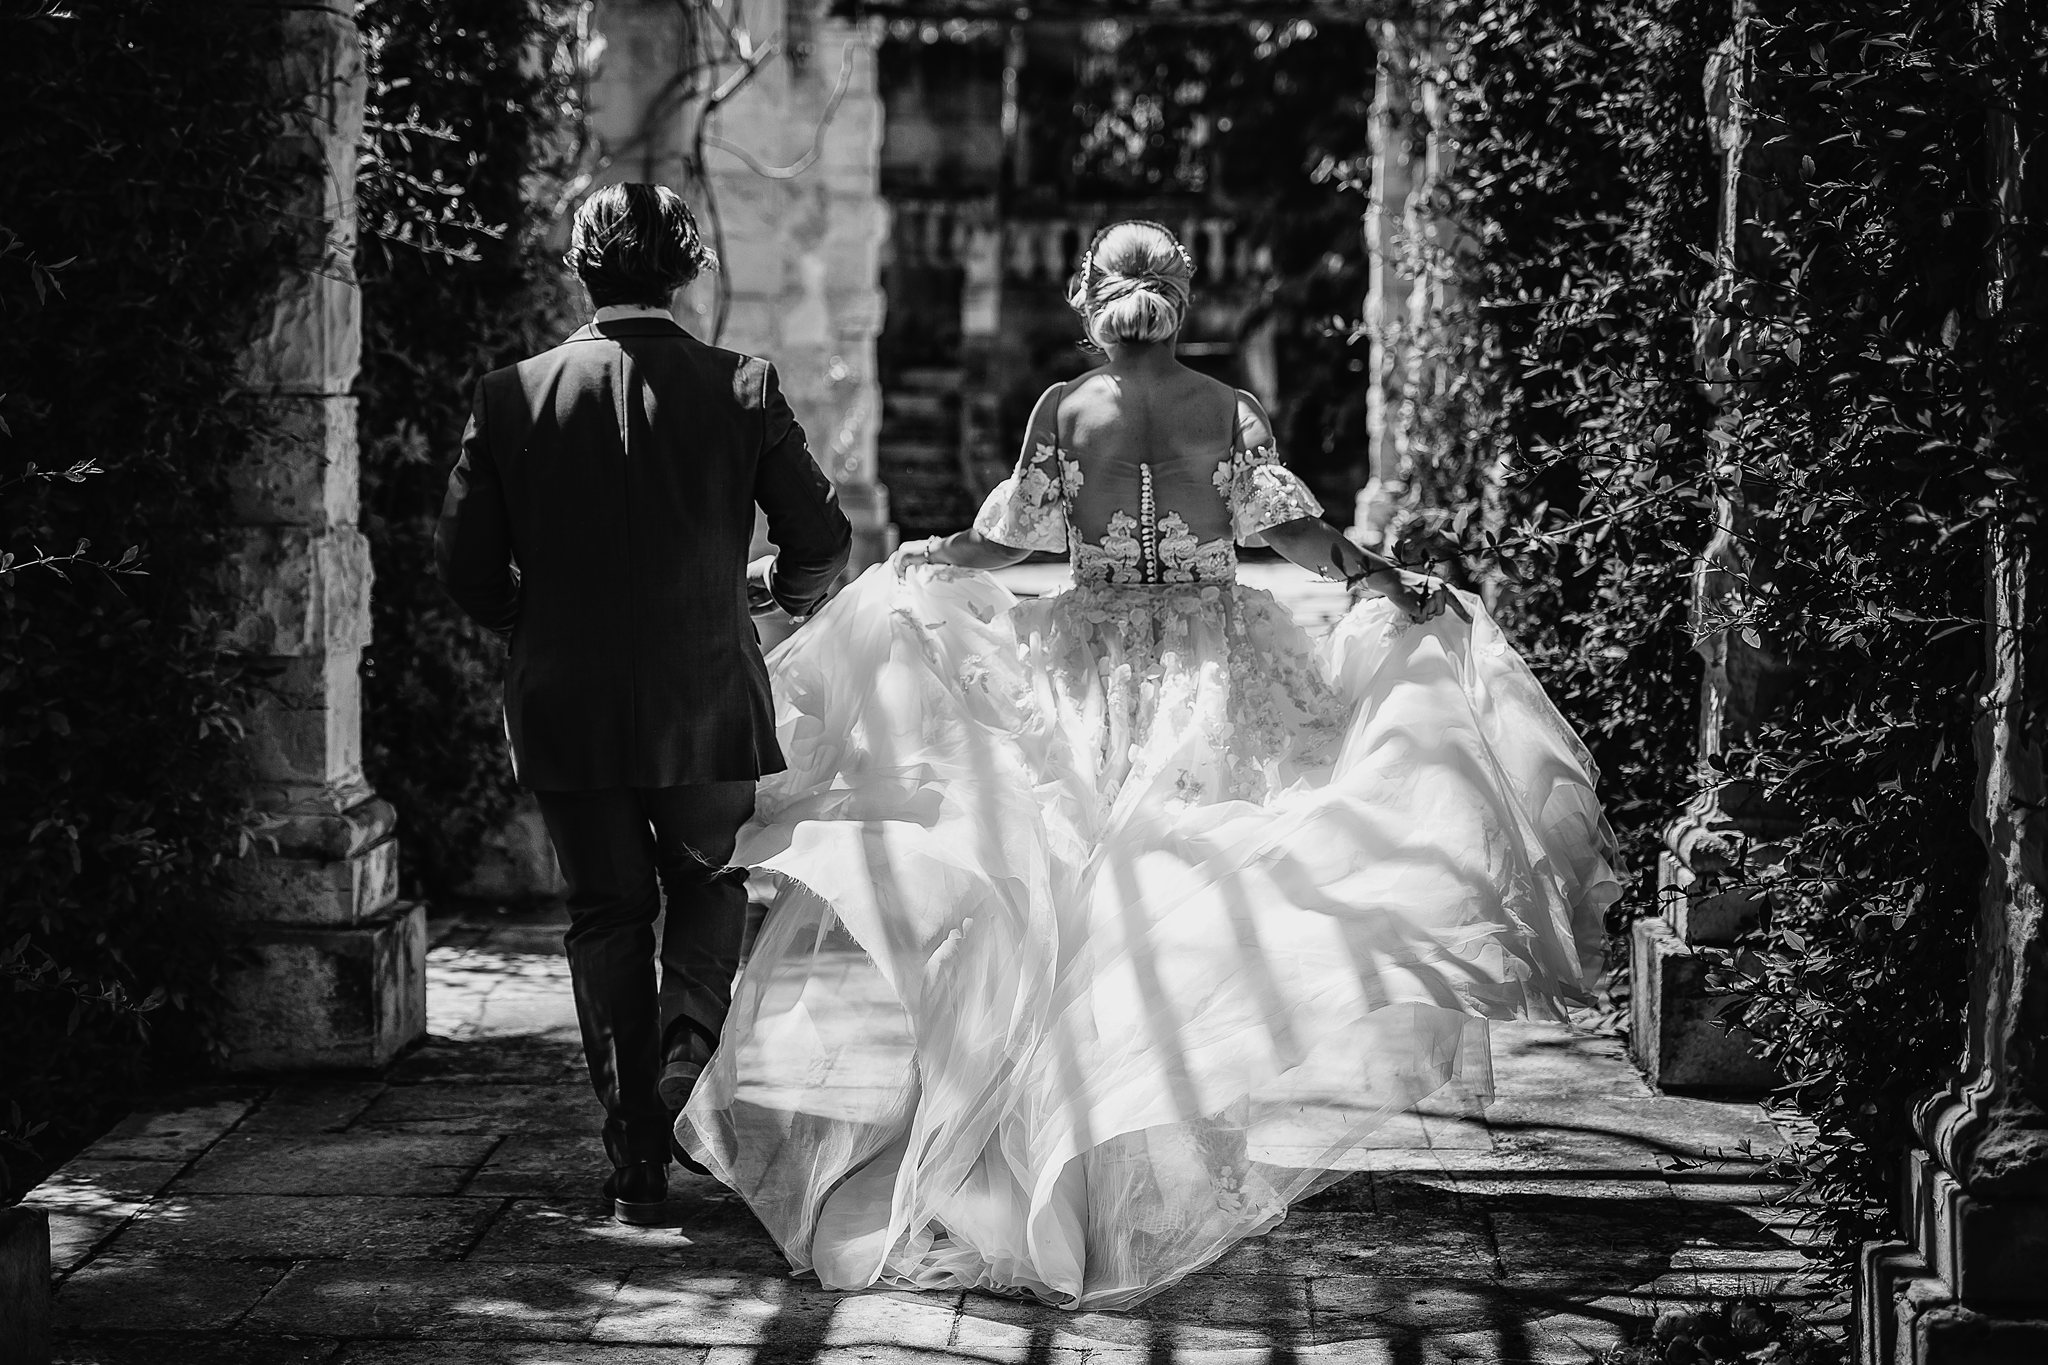 bride and groom walking together in sweet moment- photo by Shane P Watts Photography